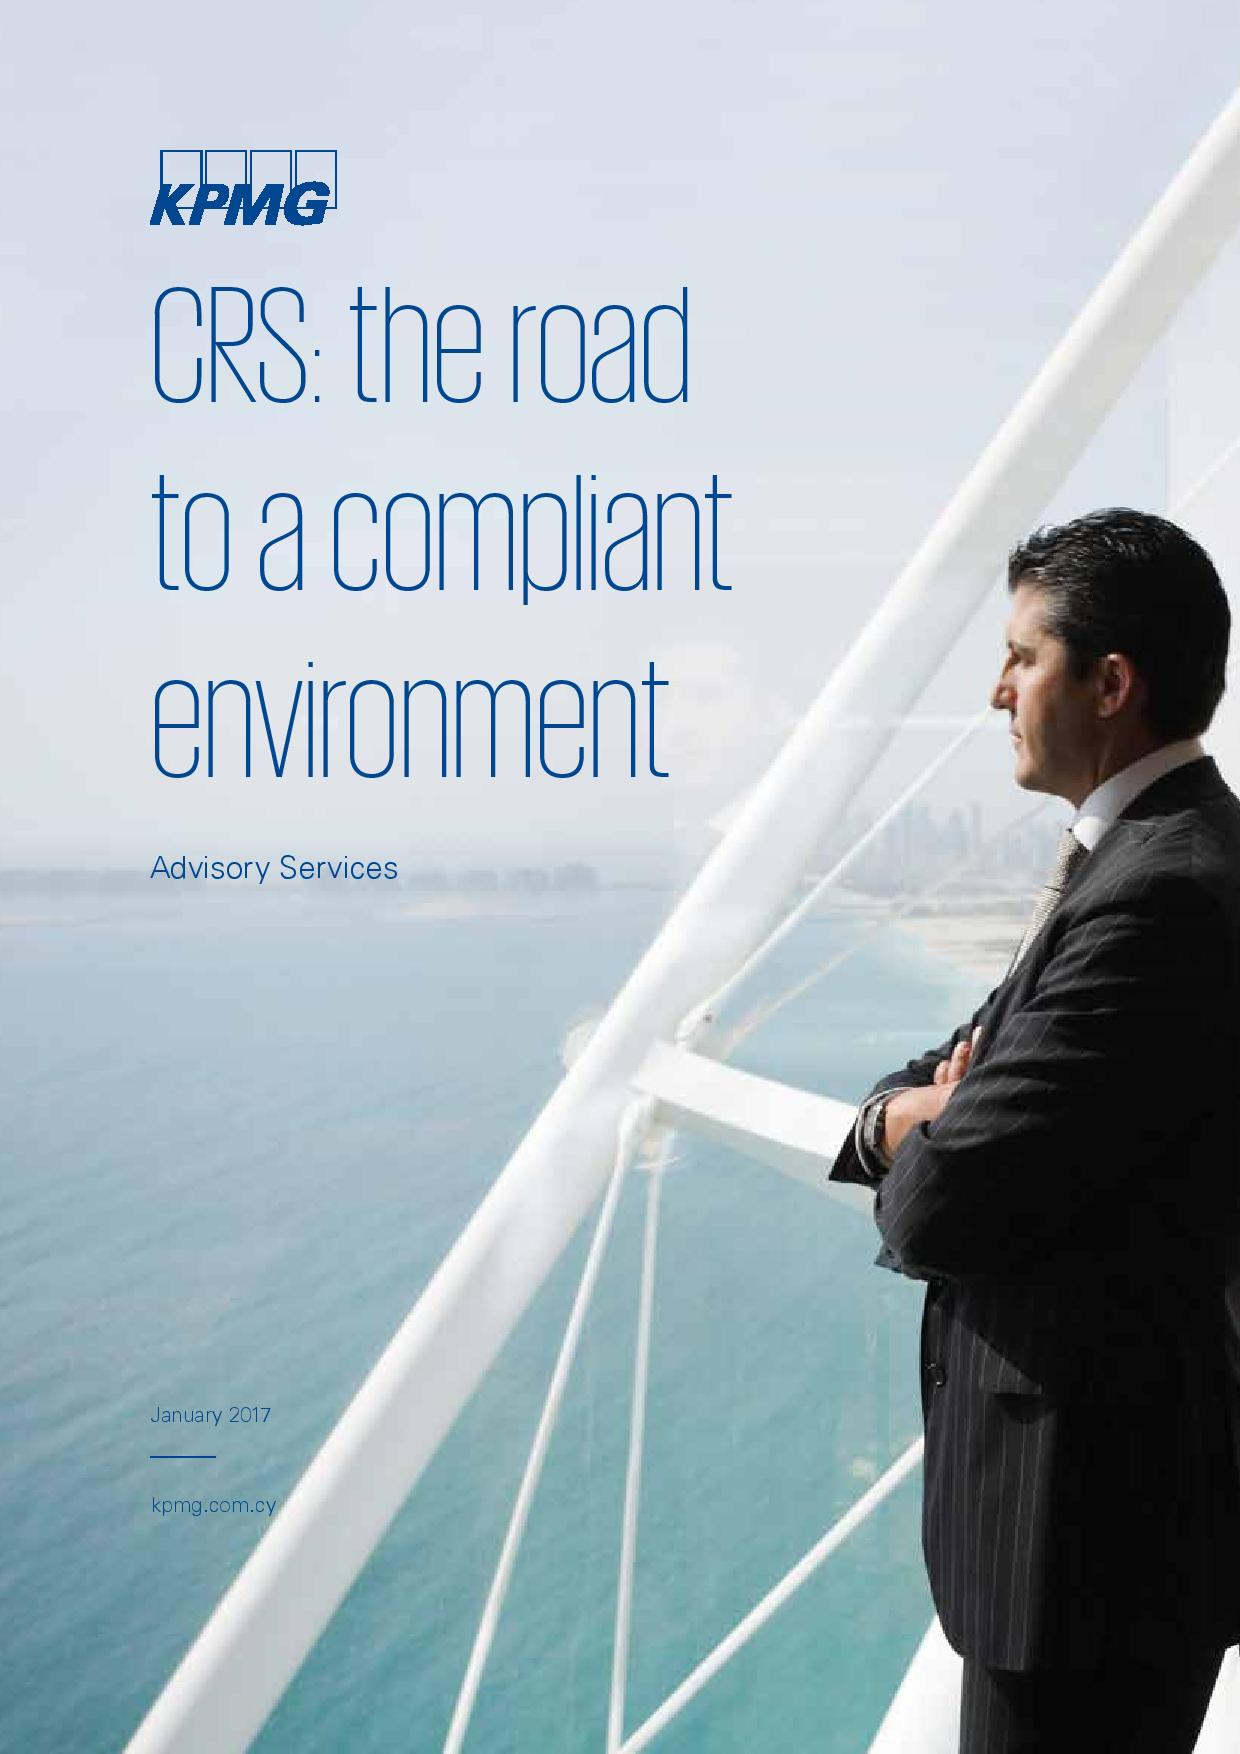 KPMG: CRS The Road to a Compliant Environment